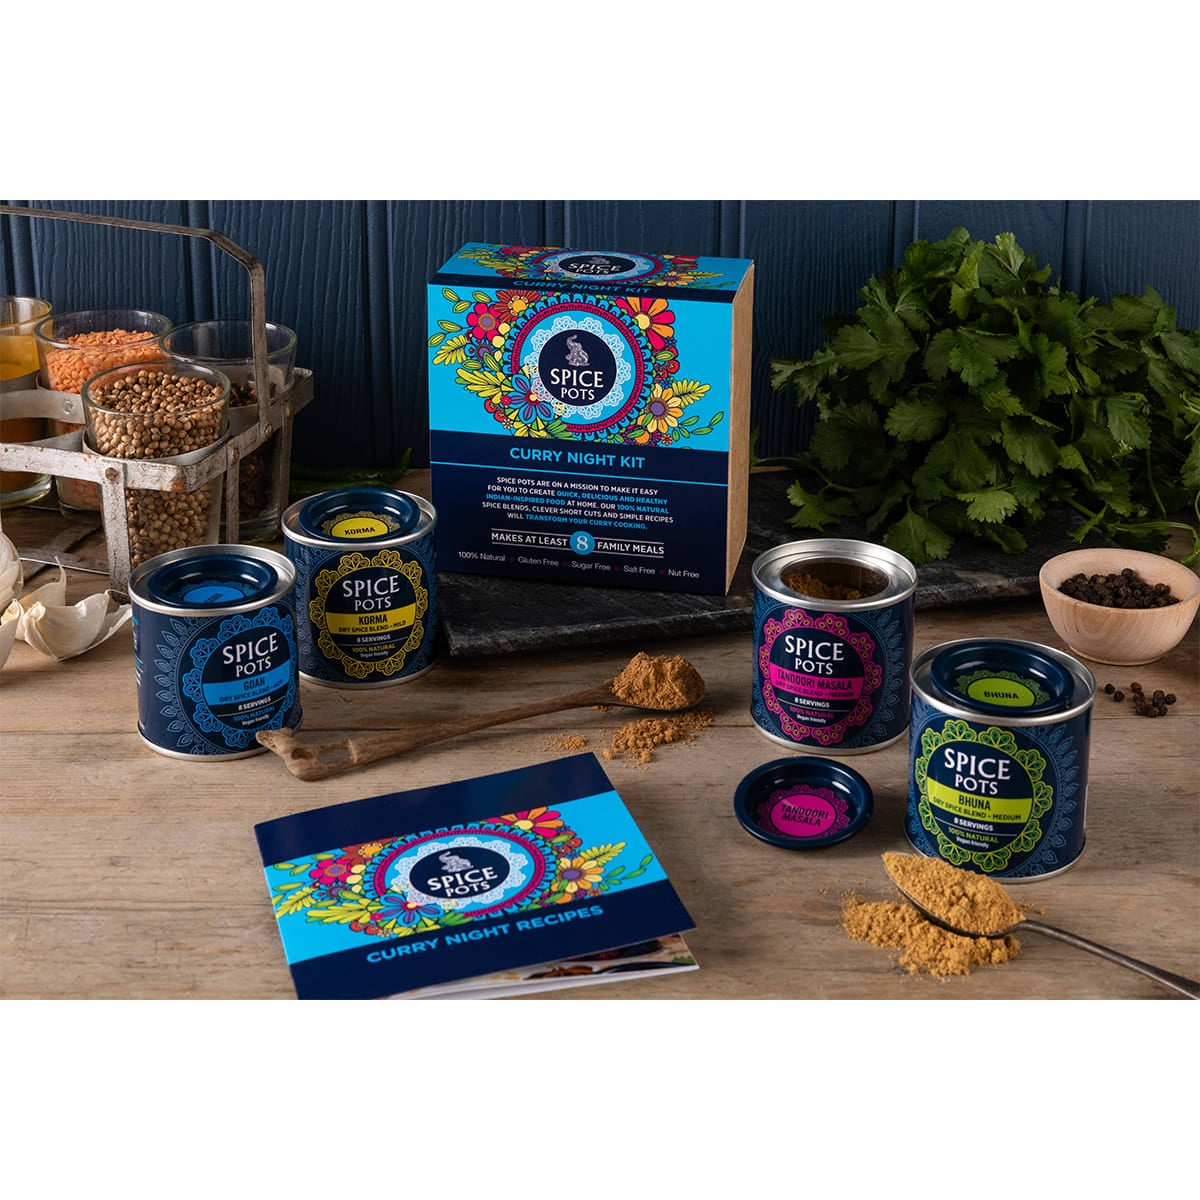 Spice Pots - Curry Night Kit lifestyle